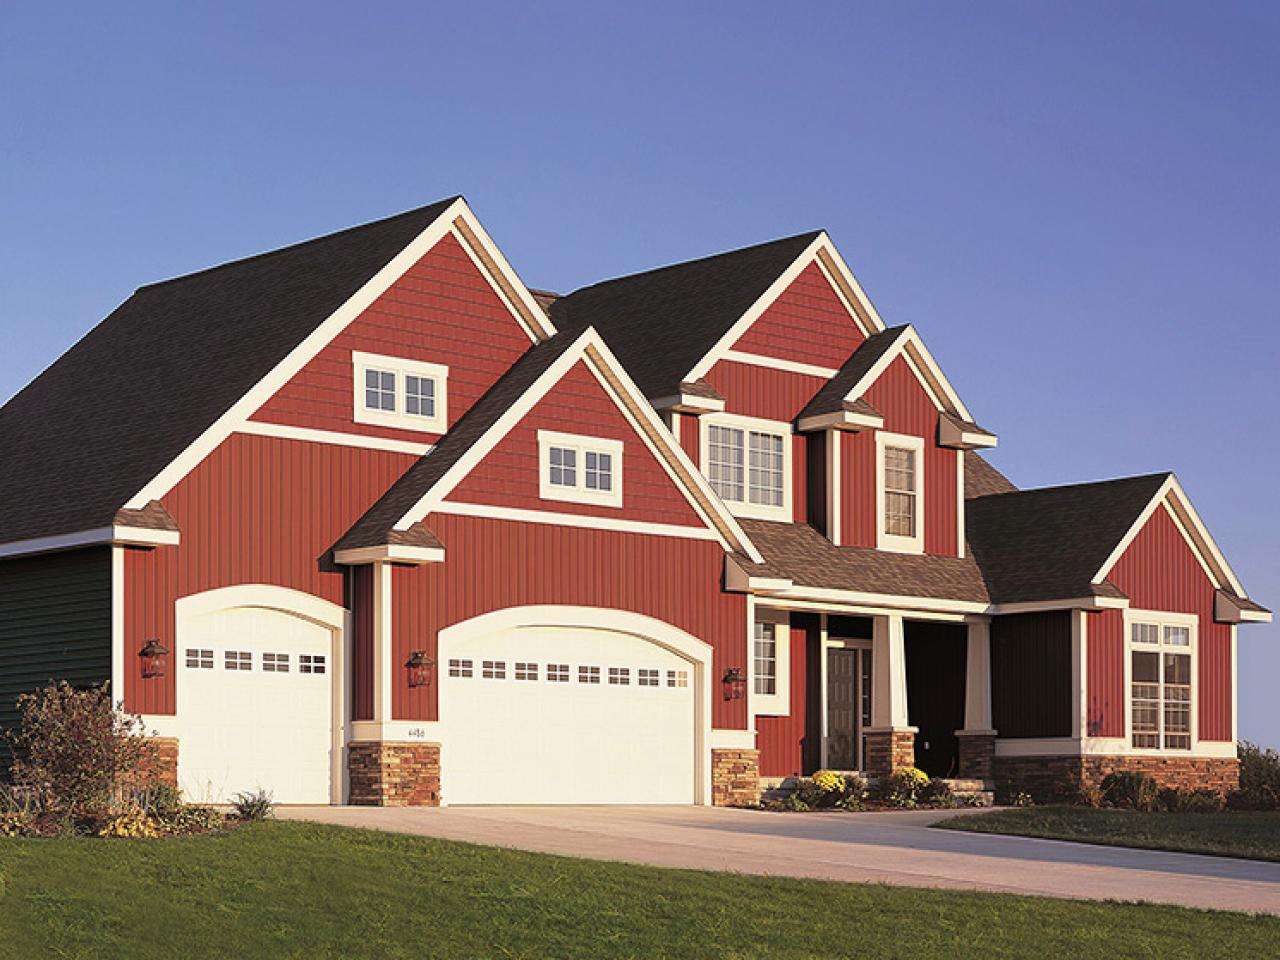 Top 6 exterior siding options hgtv - Best exterior color for small house ...